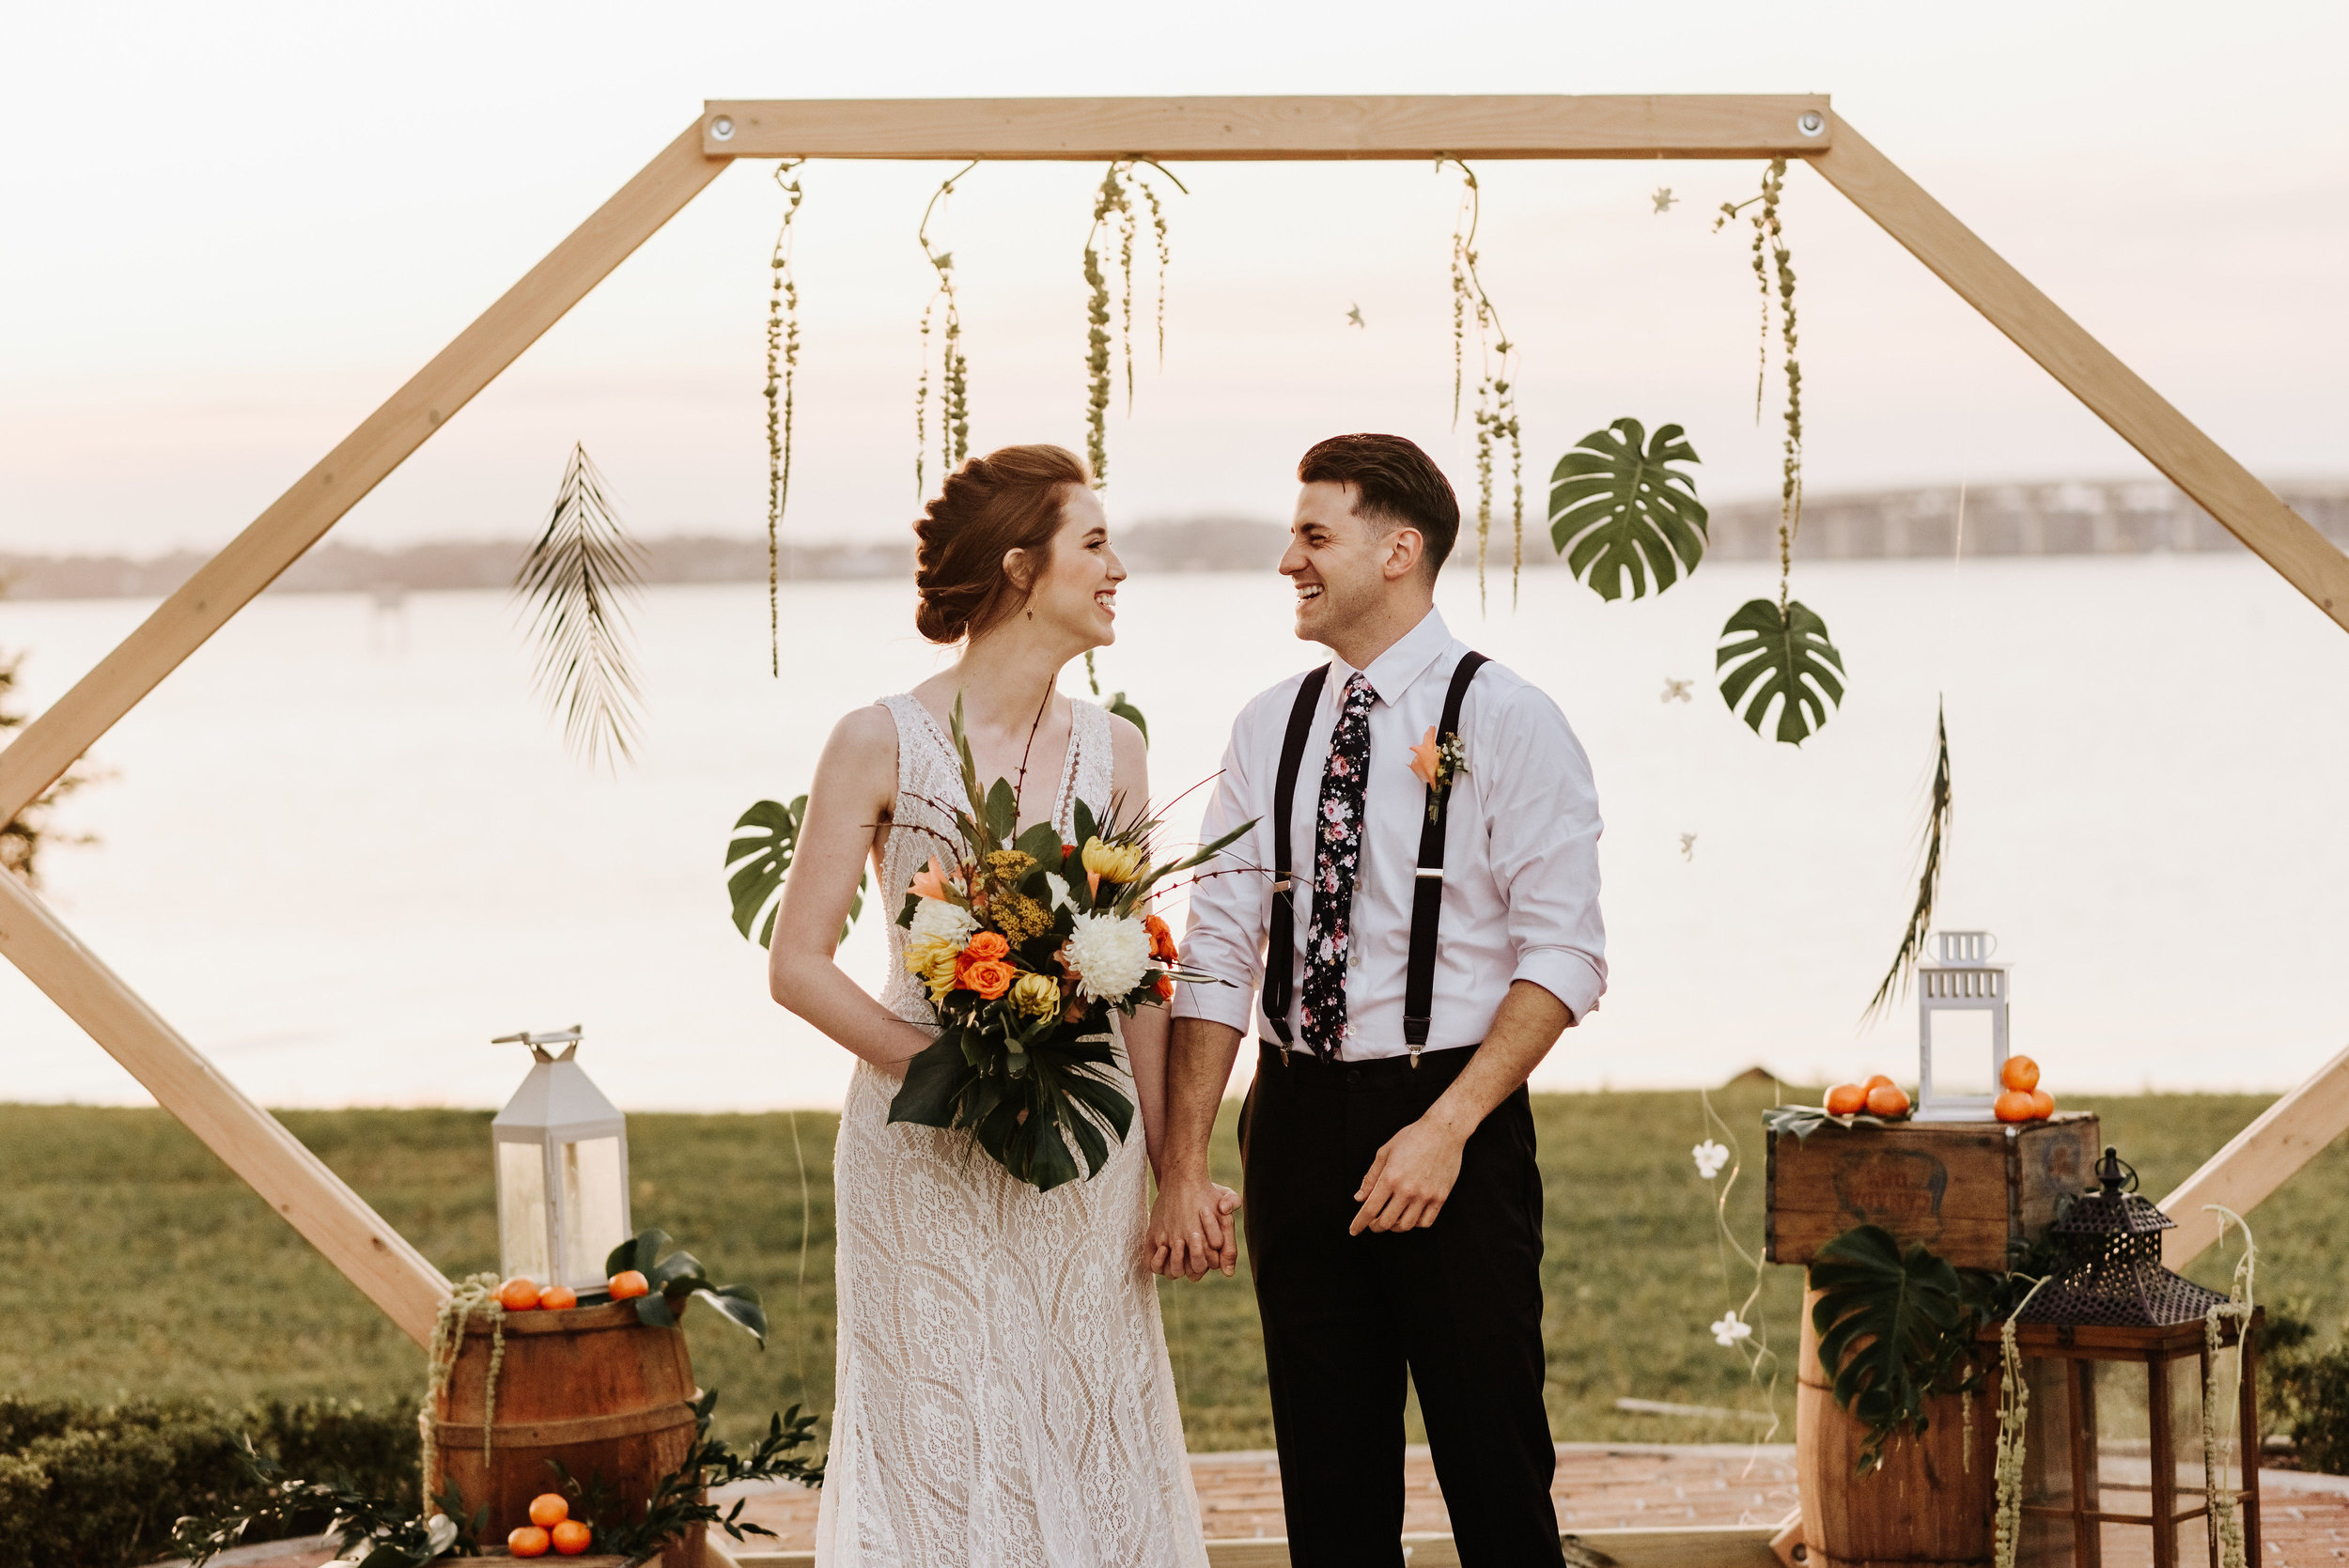 Field_Manor_Wedding_Styled_Shoot_Merritt_Island_Florida_Photography_by_V_7515.jpg